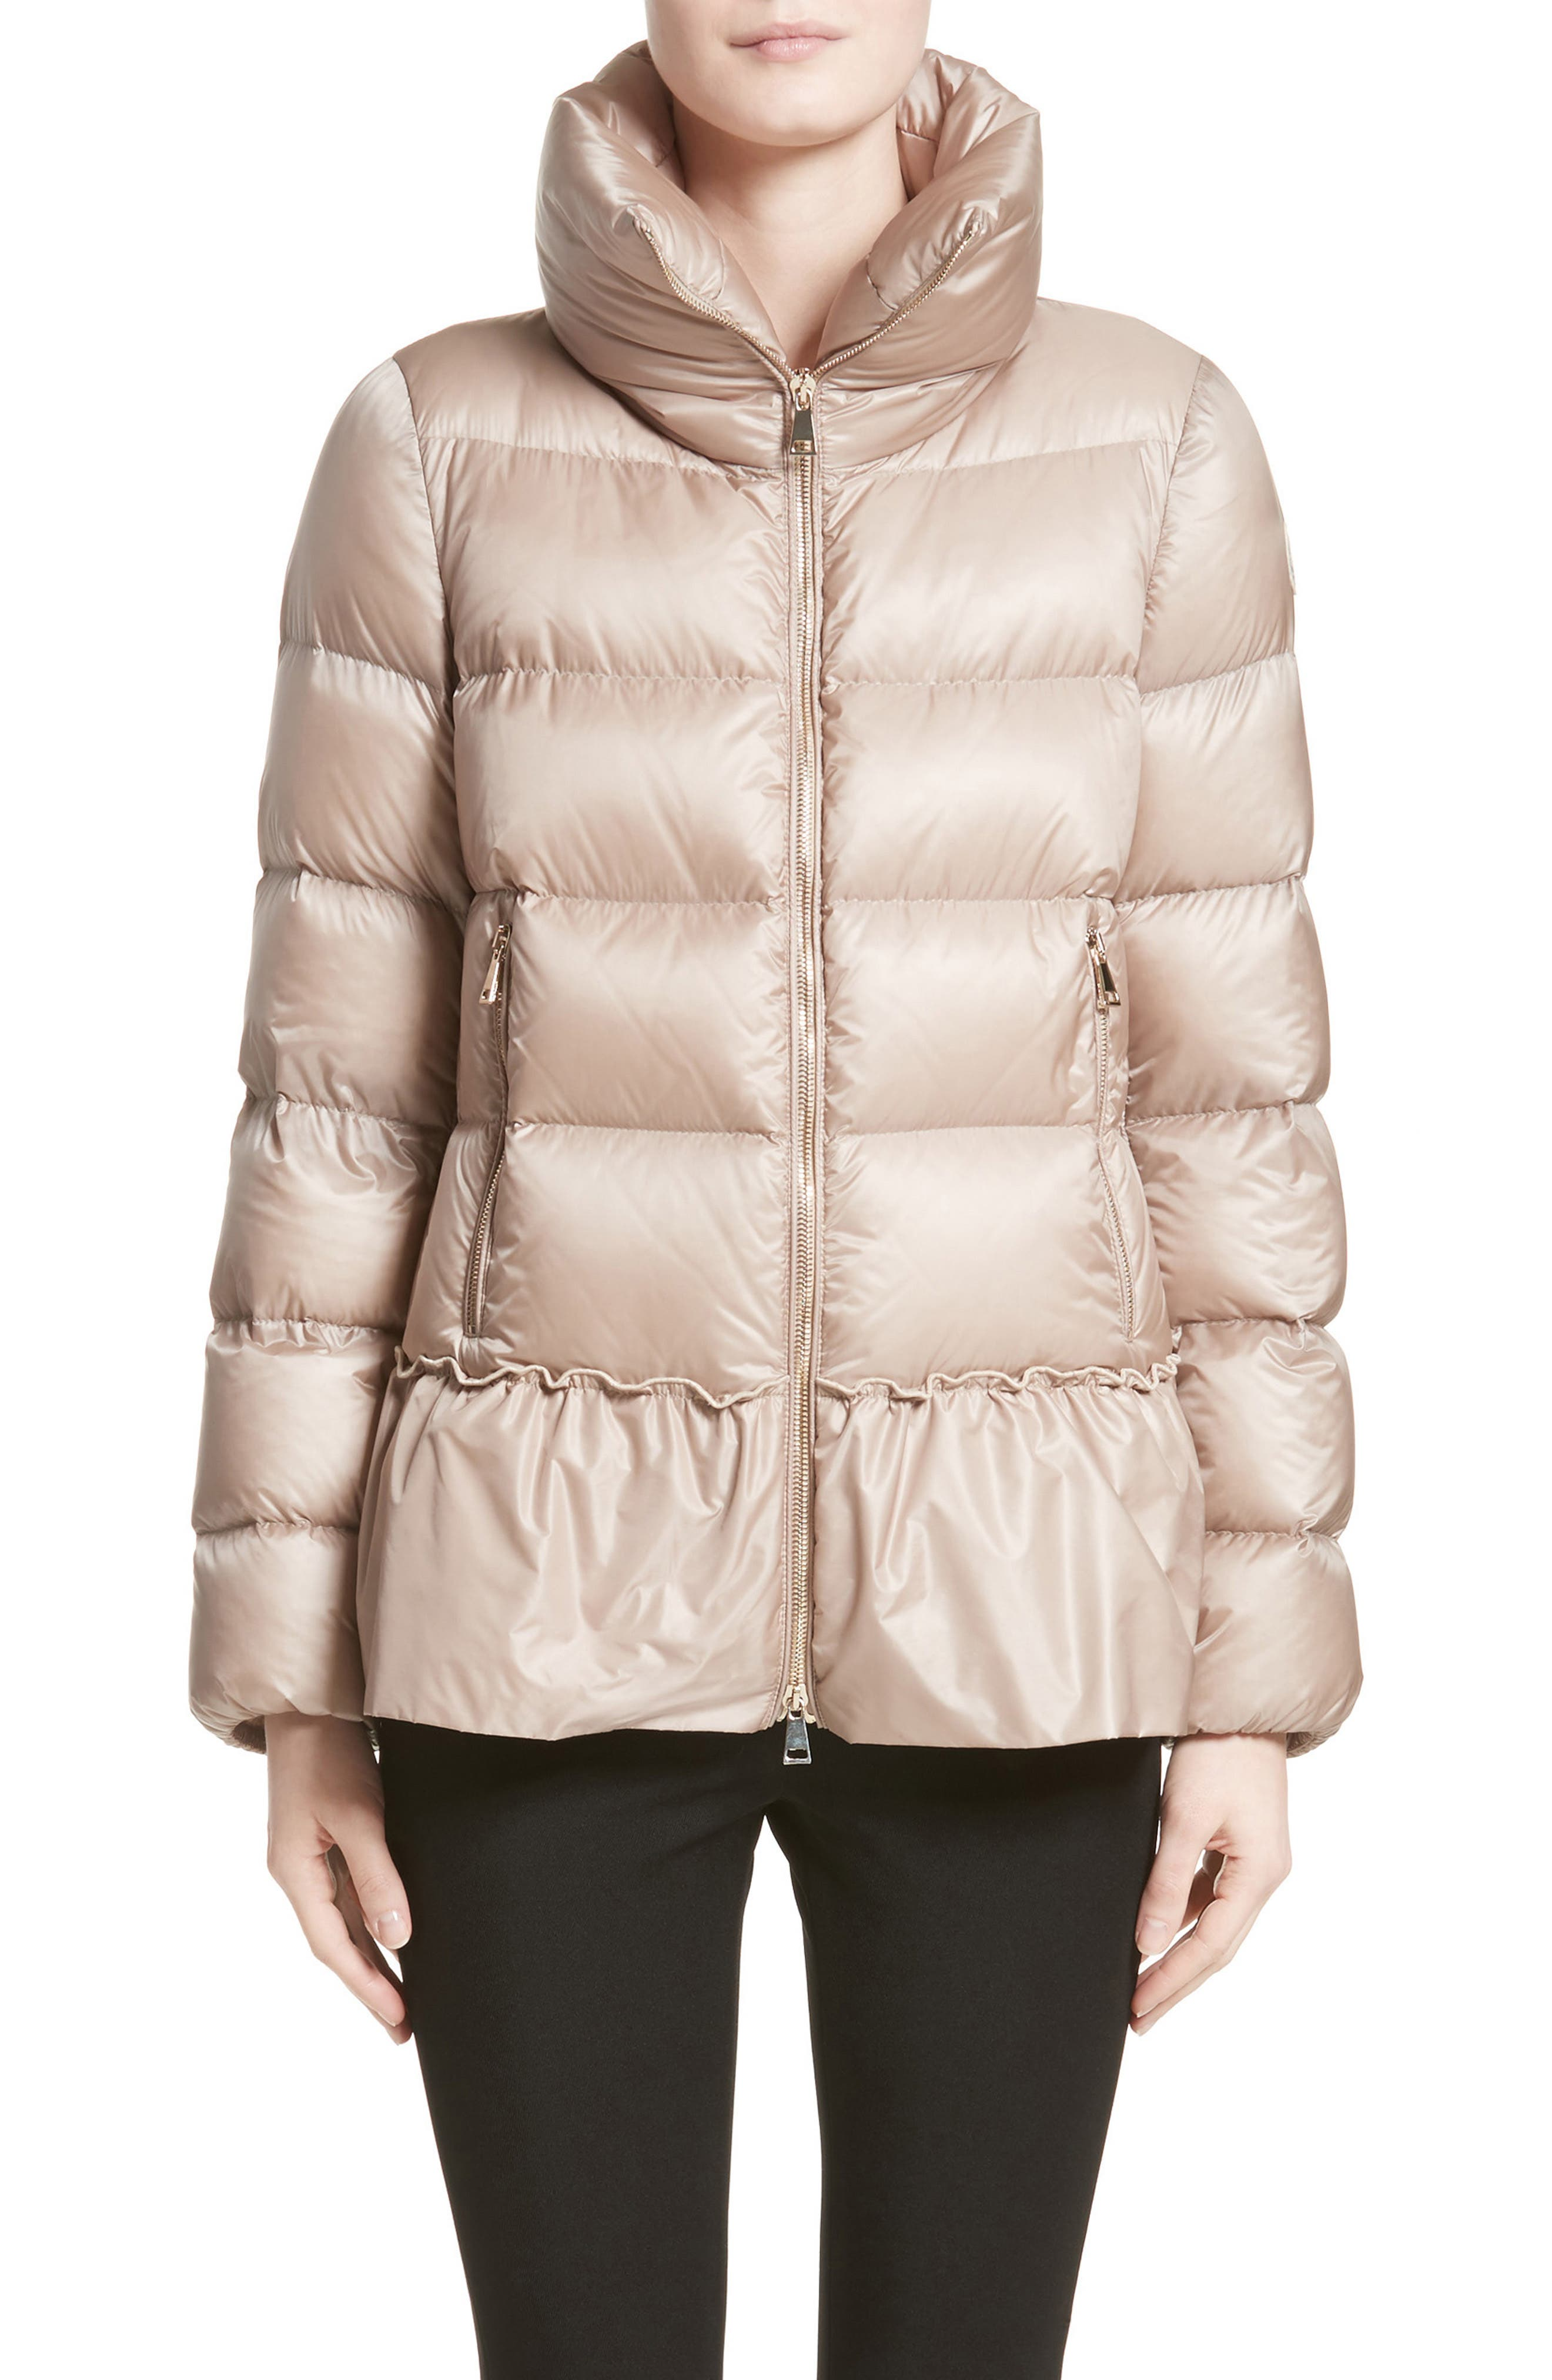 Anet Peplum Down Puffer Jacket,                             Main thumbnail 1, color,                             NATURAL